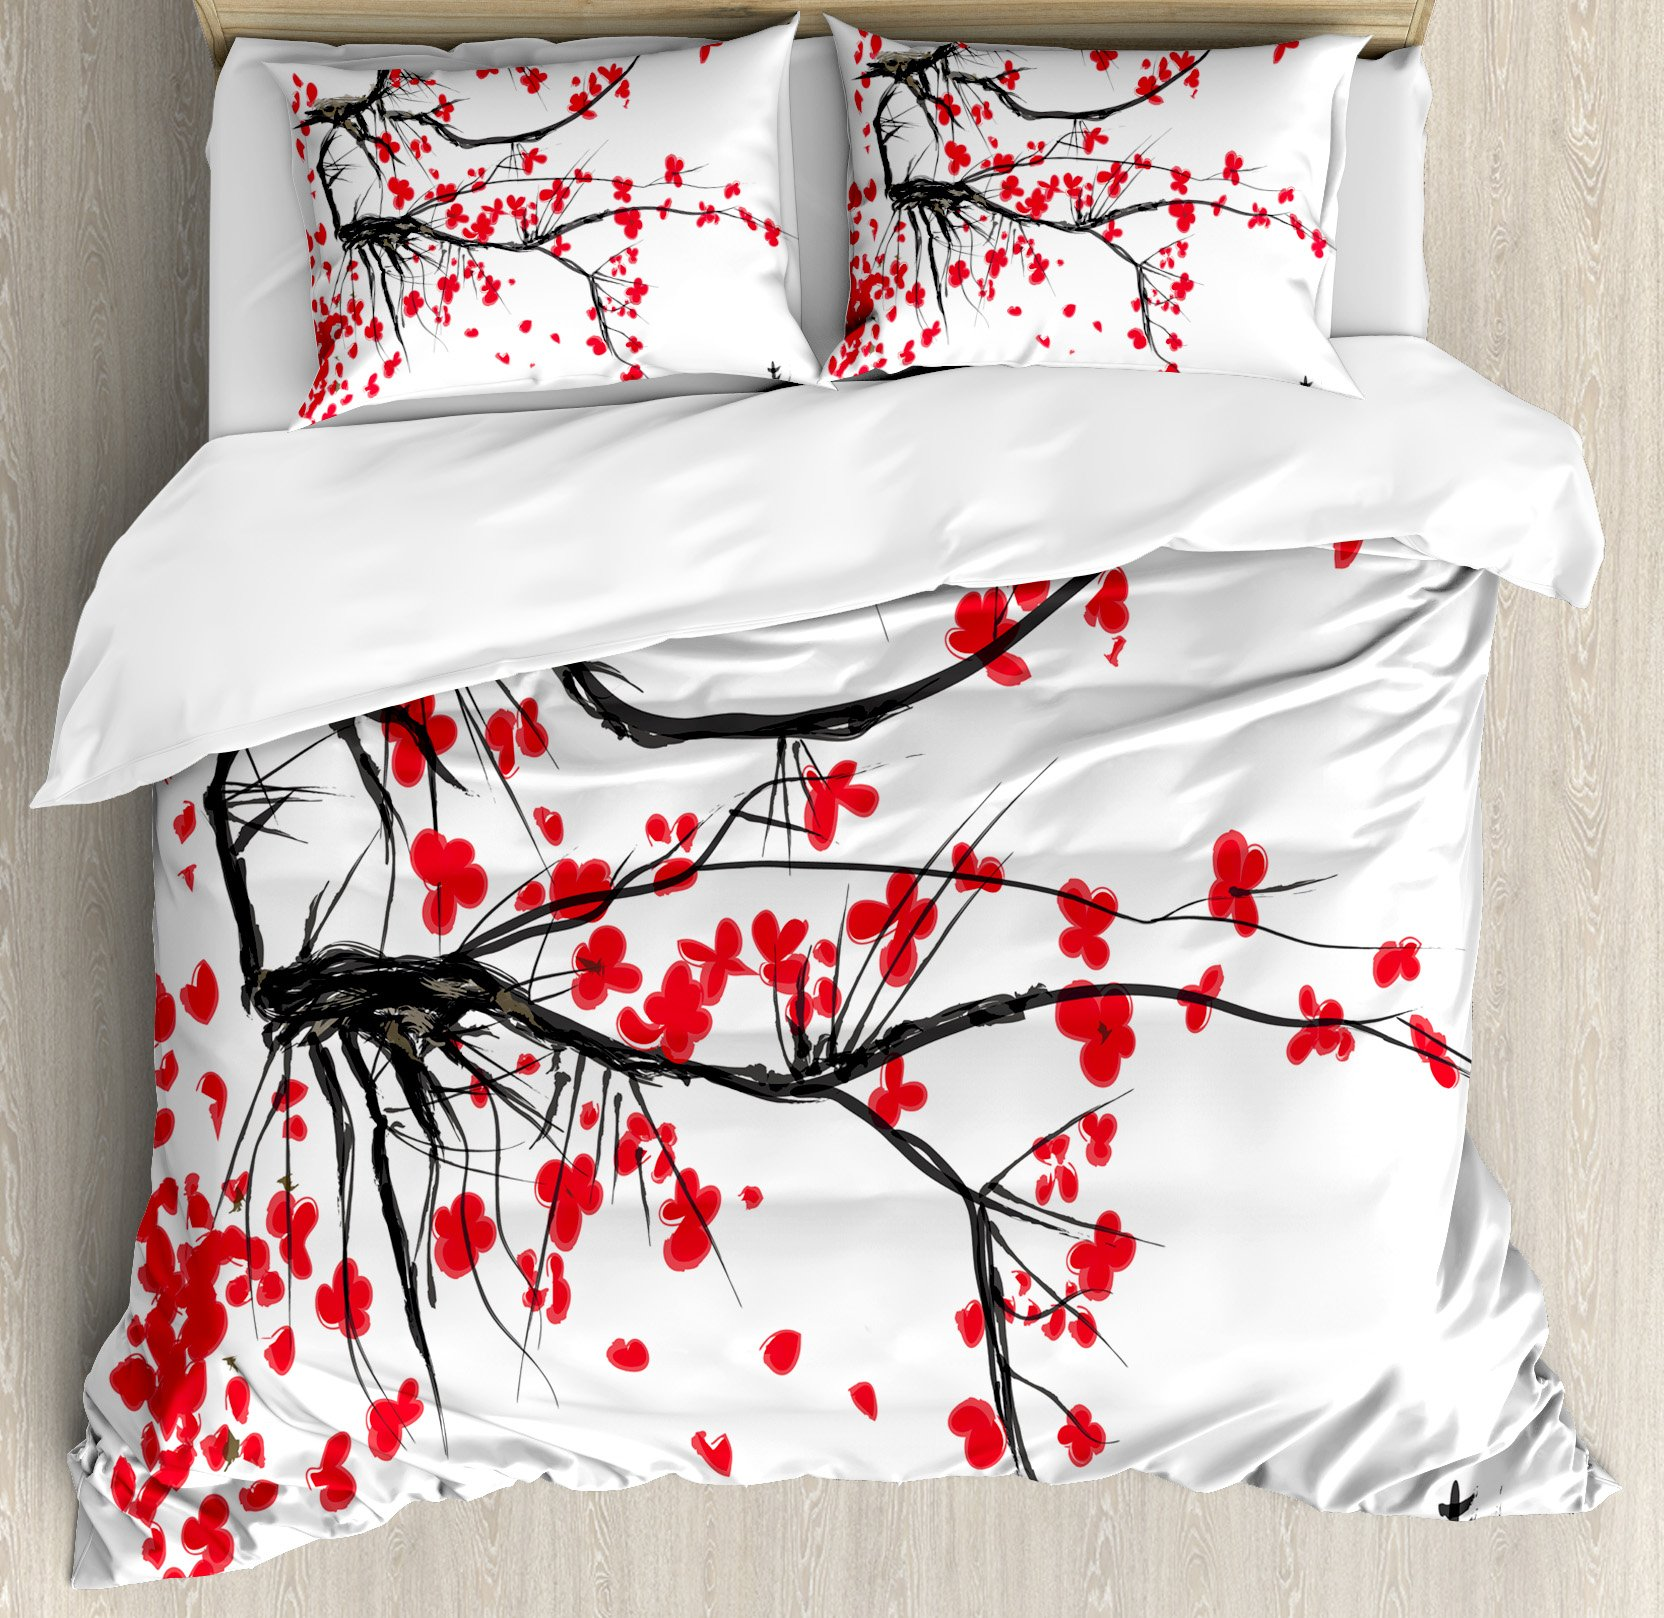 House Decor Duvet Cover Set by Ambesonne, Sakura Blossom Japanese Cherry Tree Summertime Vintage Cultural Artwork, 3 Piece Bedding Set with Pillow Shams, Queen / Full, Red Black